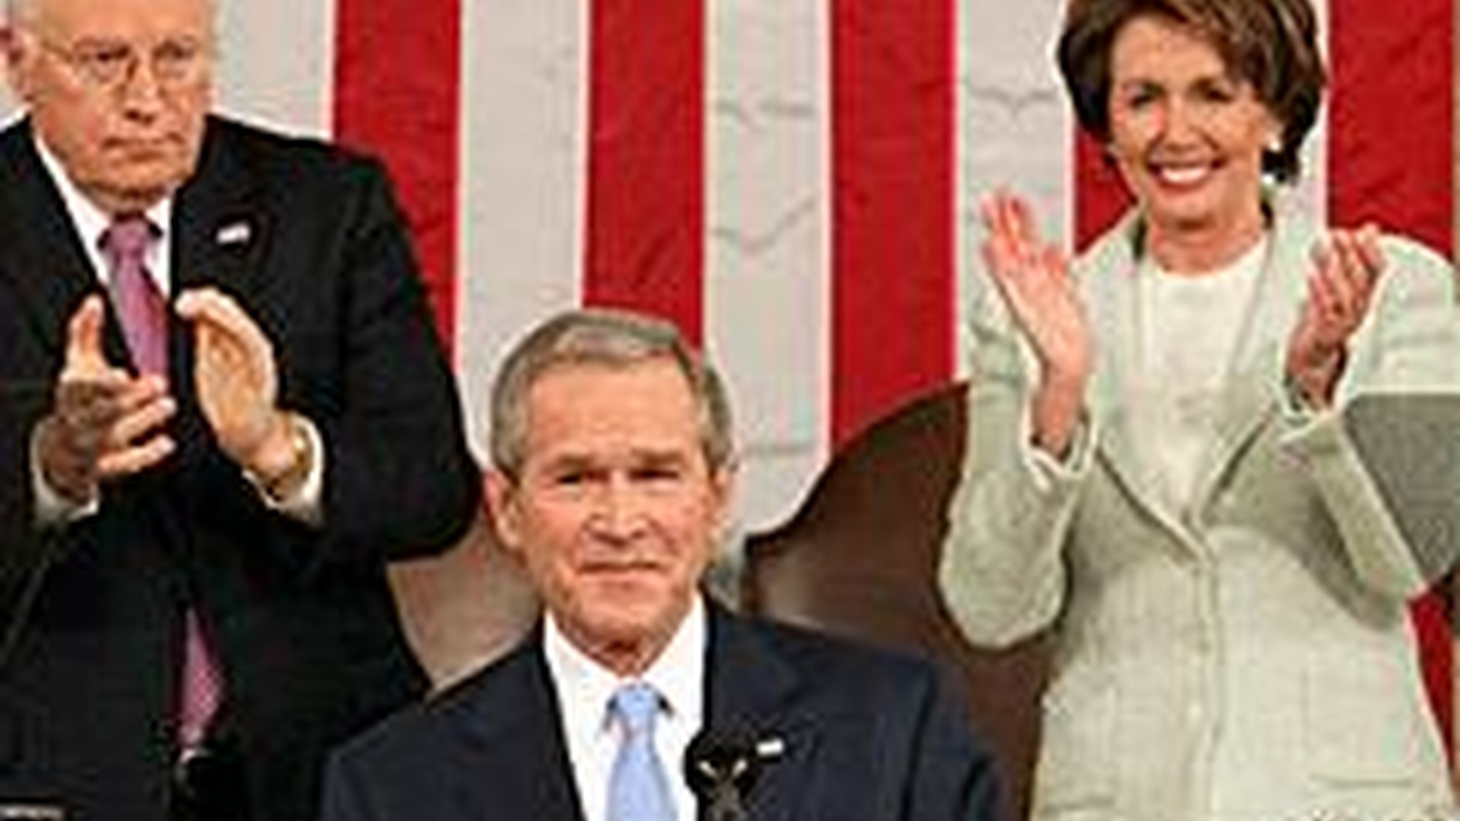 Tonight at 6pm (PST), President Bush presents his final State of the Union address.  KCRW will carry the address live, as well as the Democratic response, presented by Governor Kathleen Sebelius of Kansas.